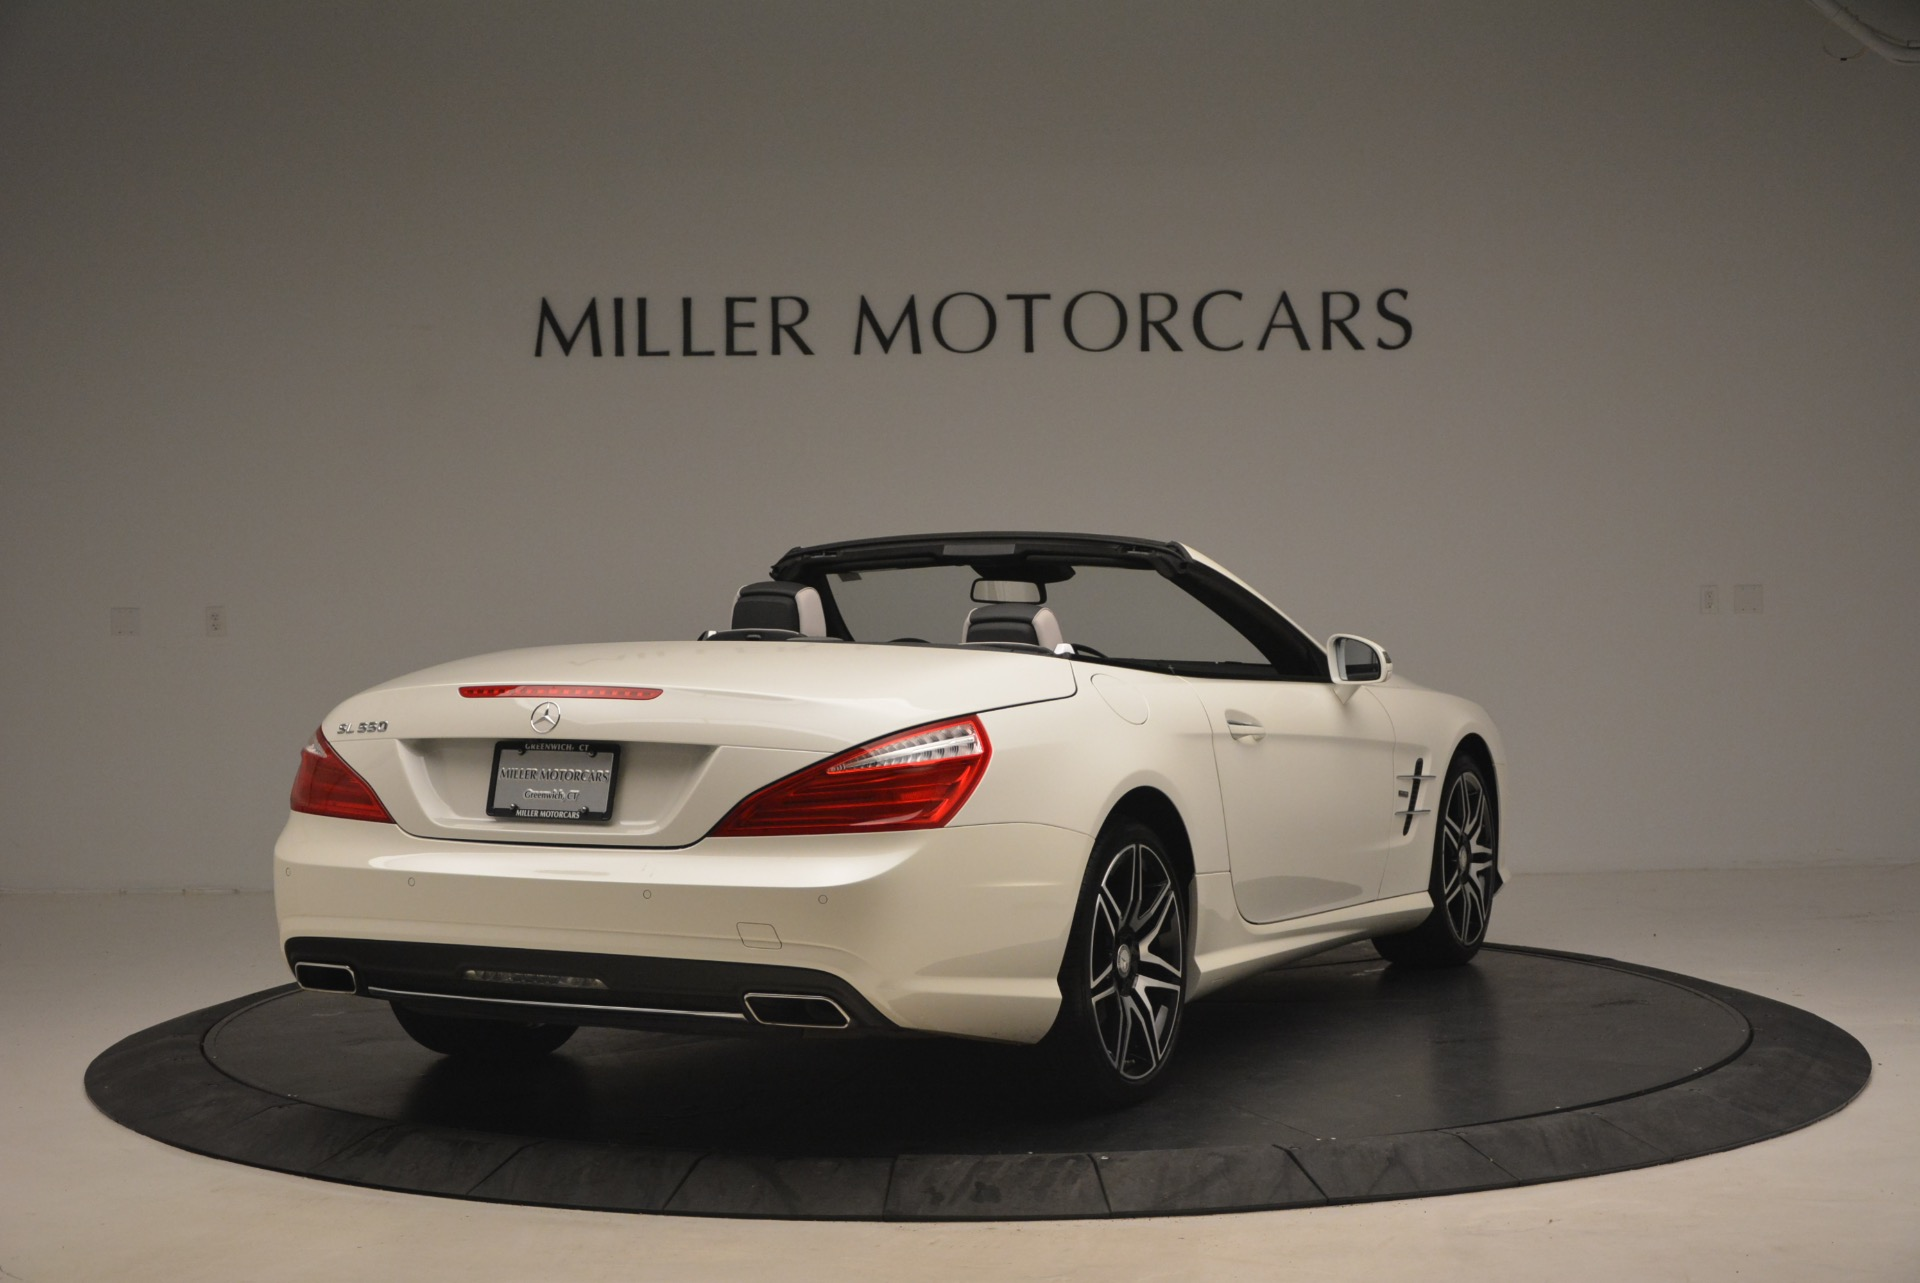 Used 2015 Mercedes Benz SL-Class SL 550 For Sale In Westport, CT 1261_p7